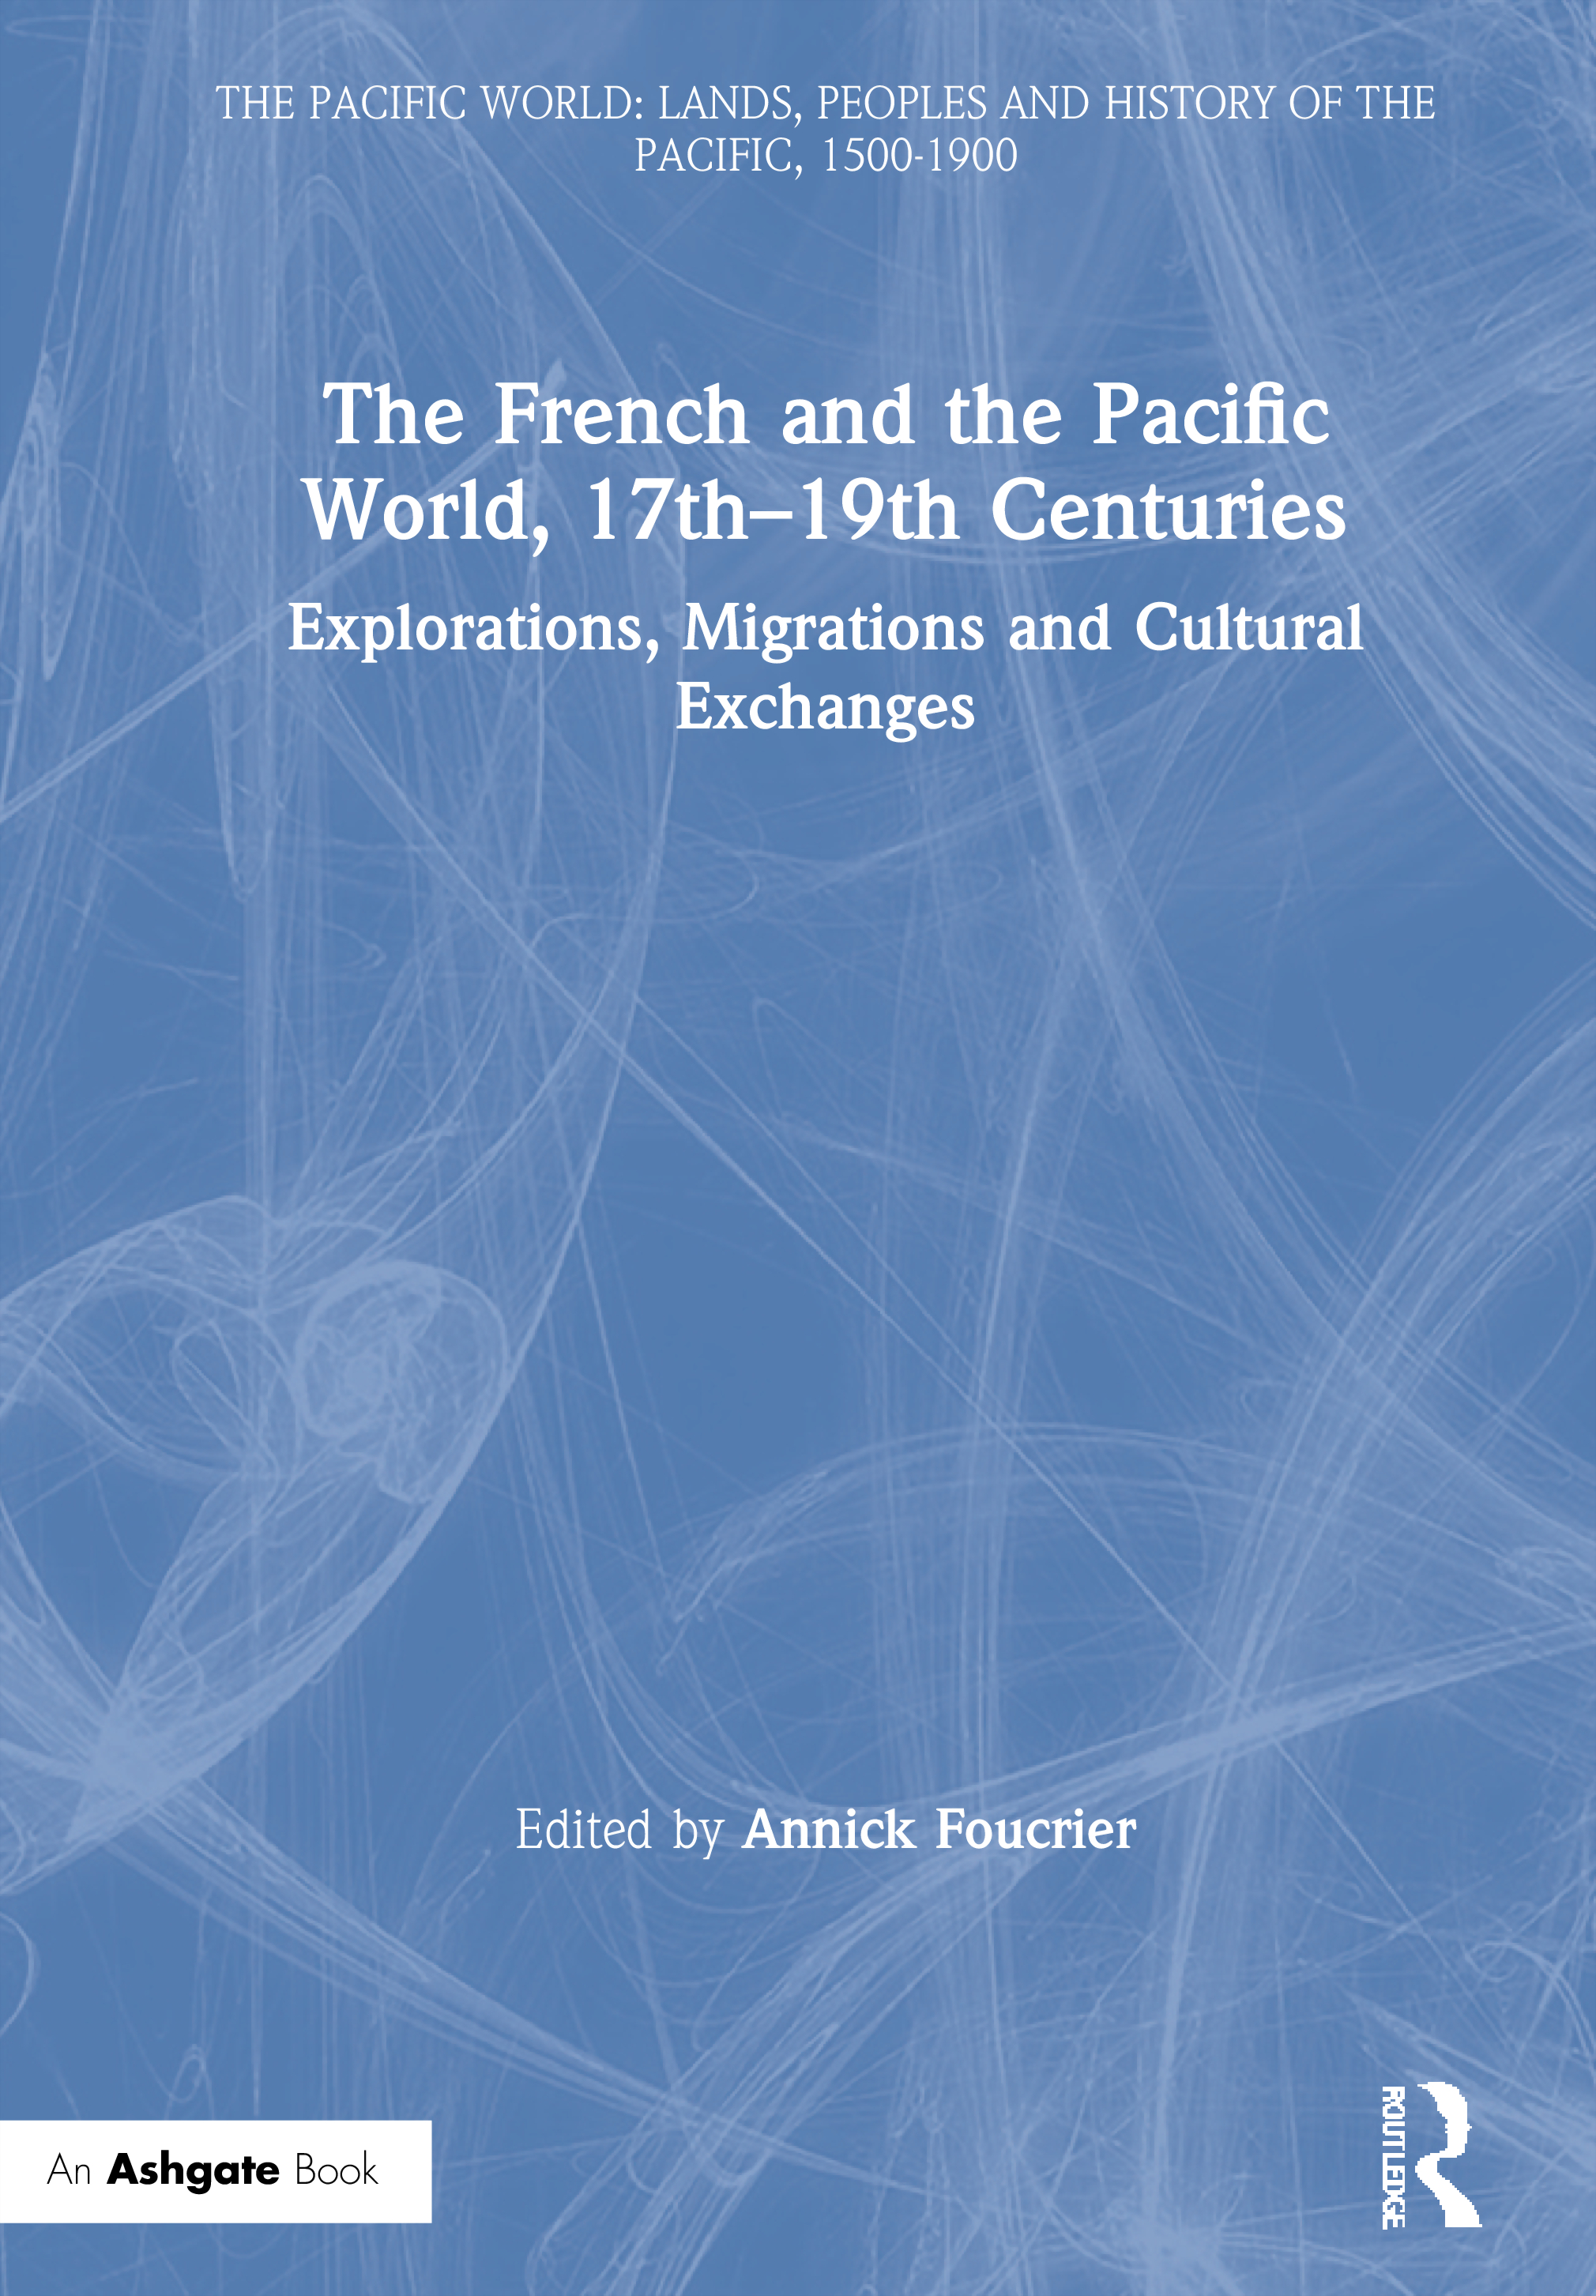 The French and the Pacific World, 17th–19th Centuries